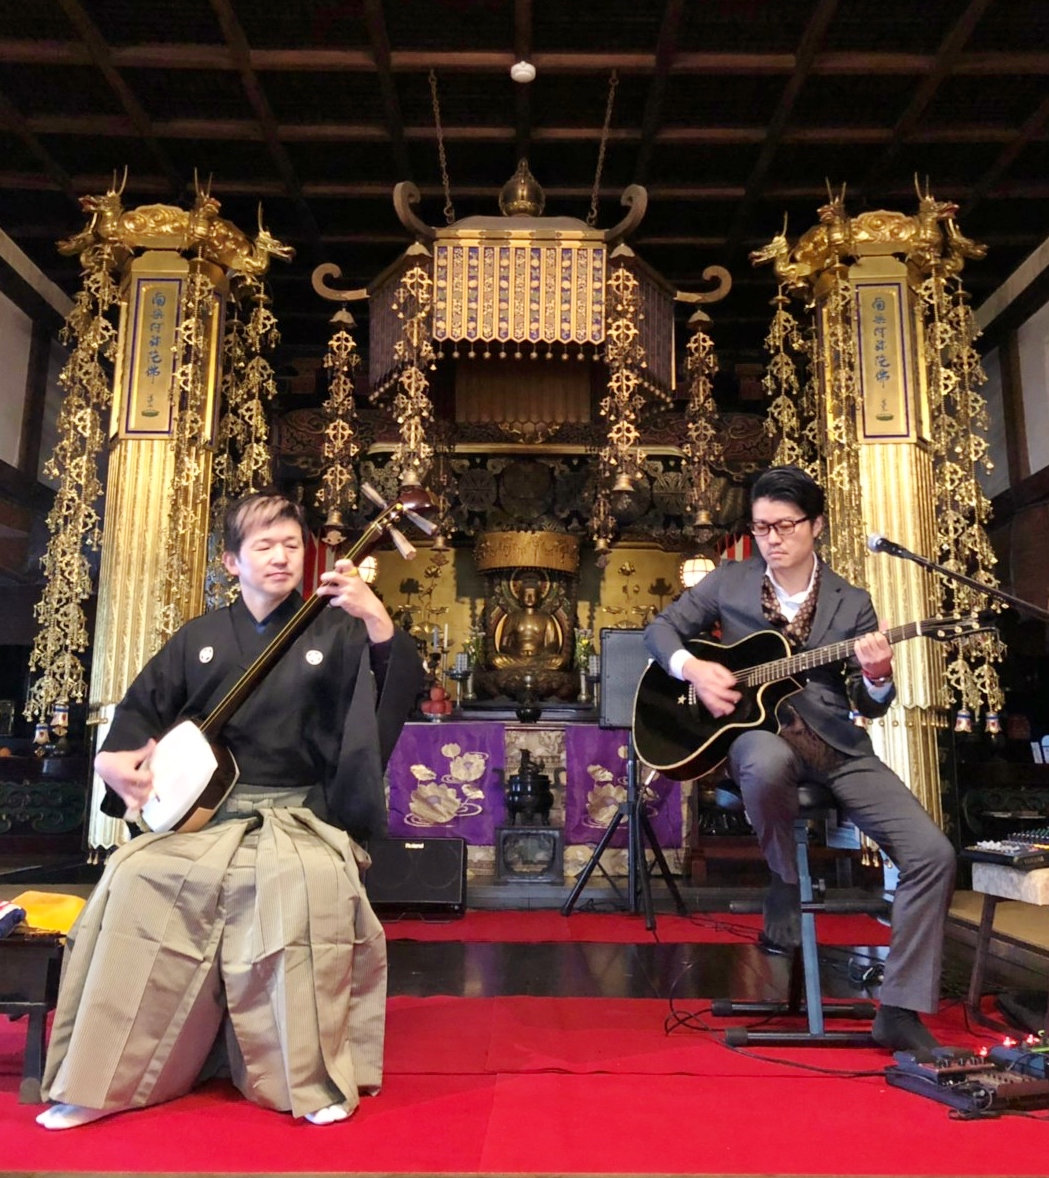 Temple Concert & Buddhist Experience